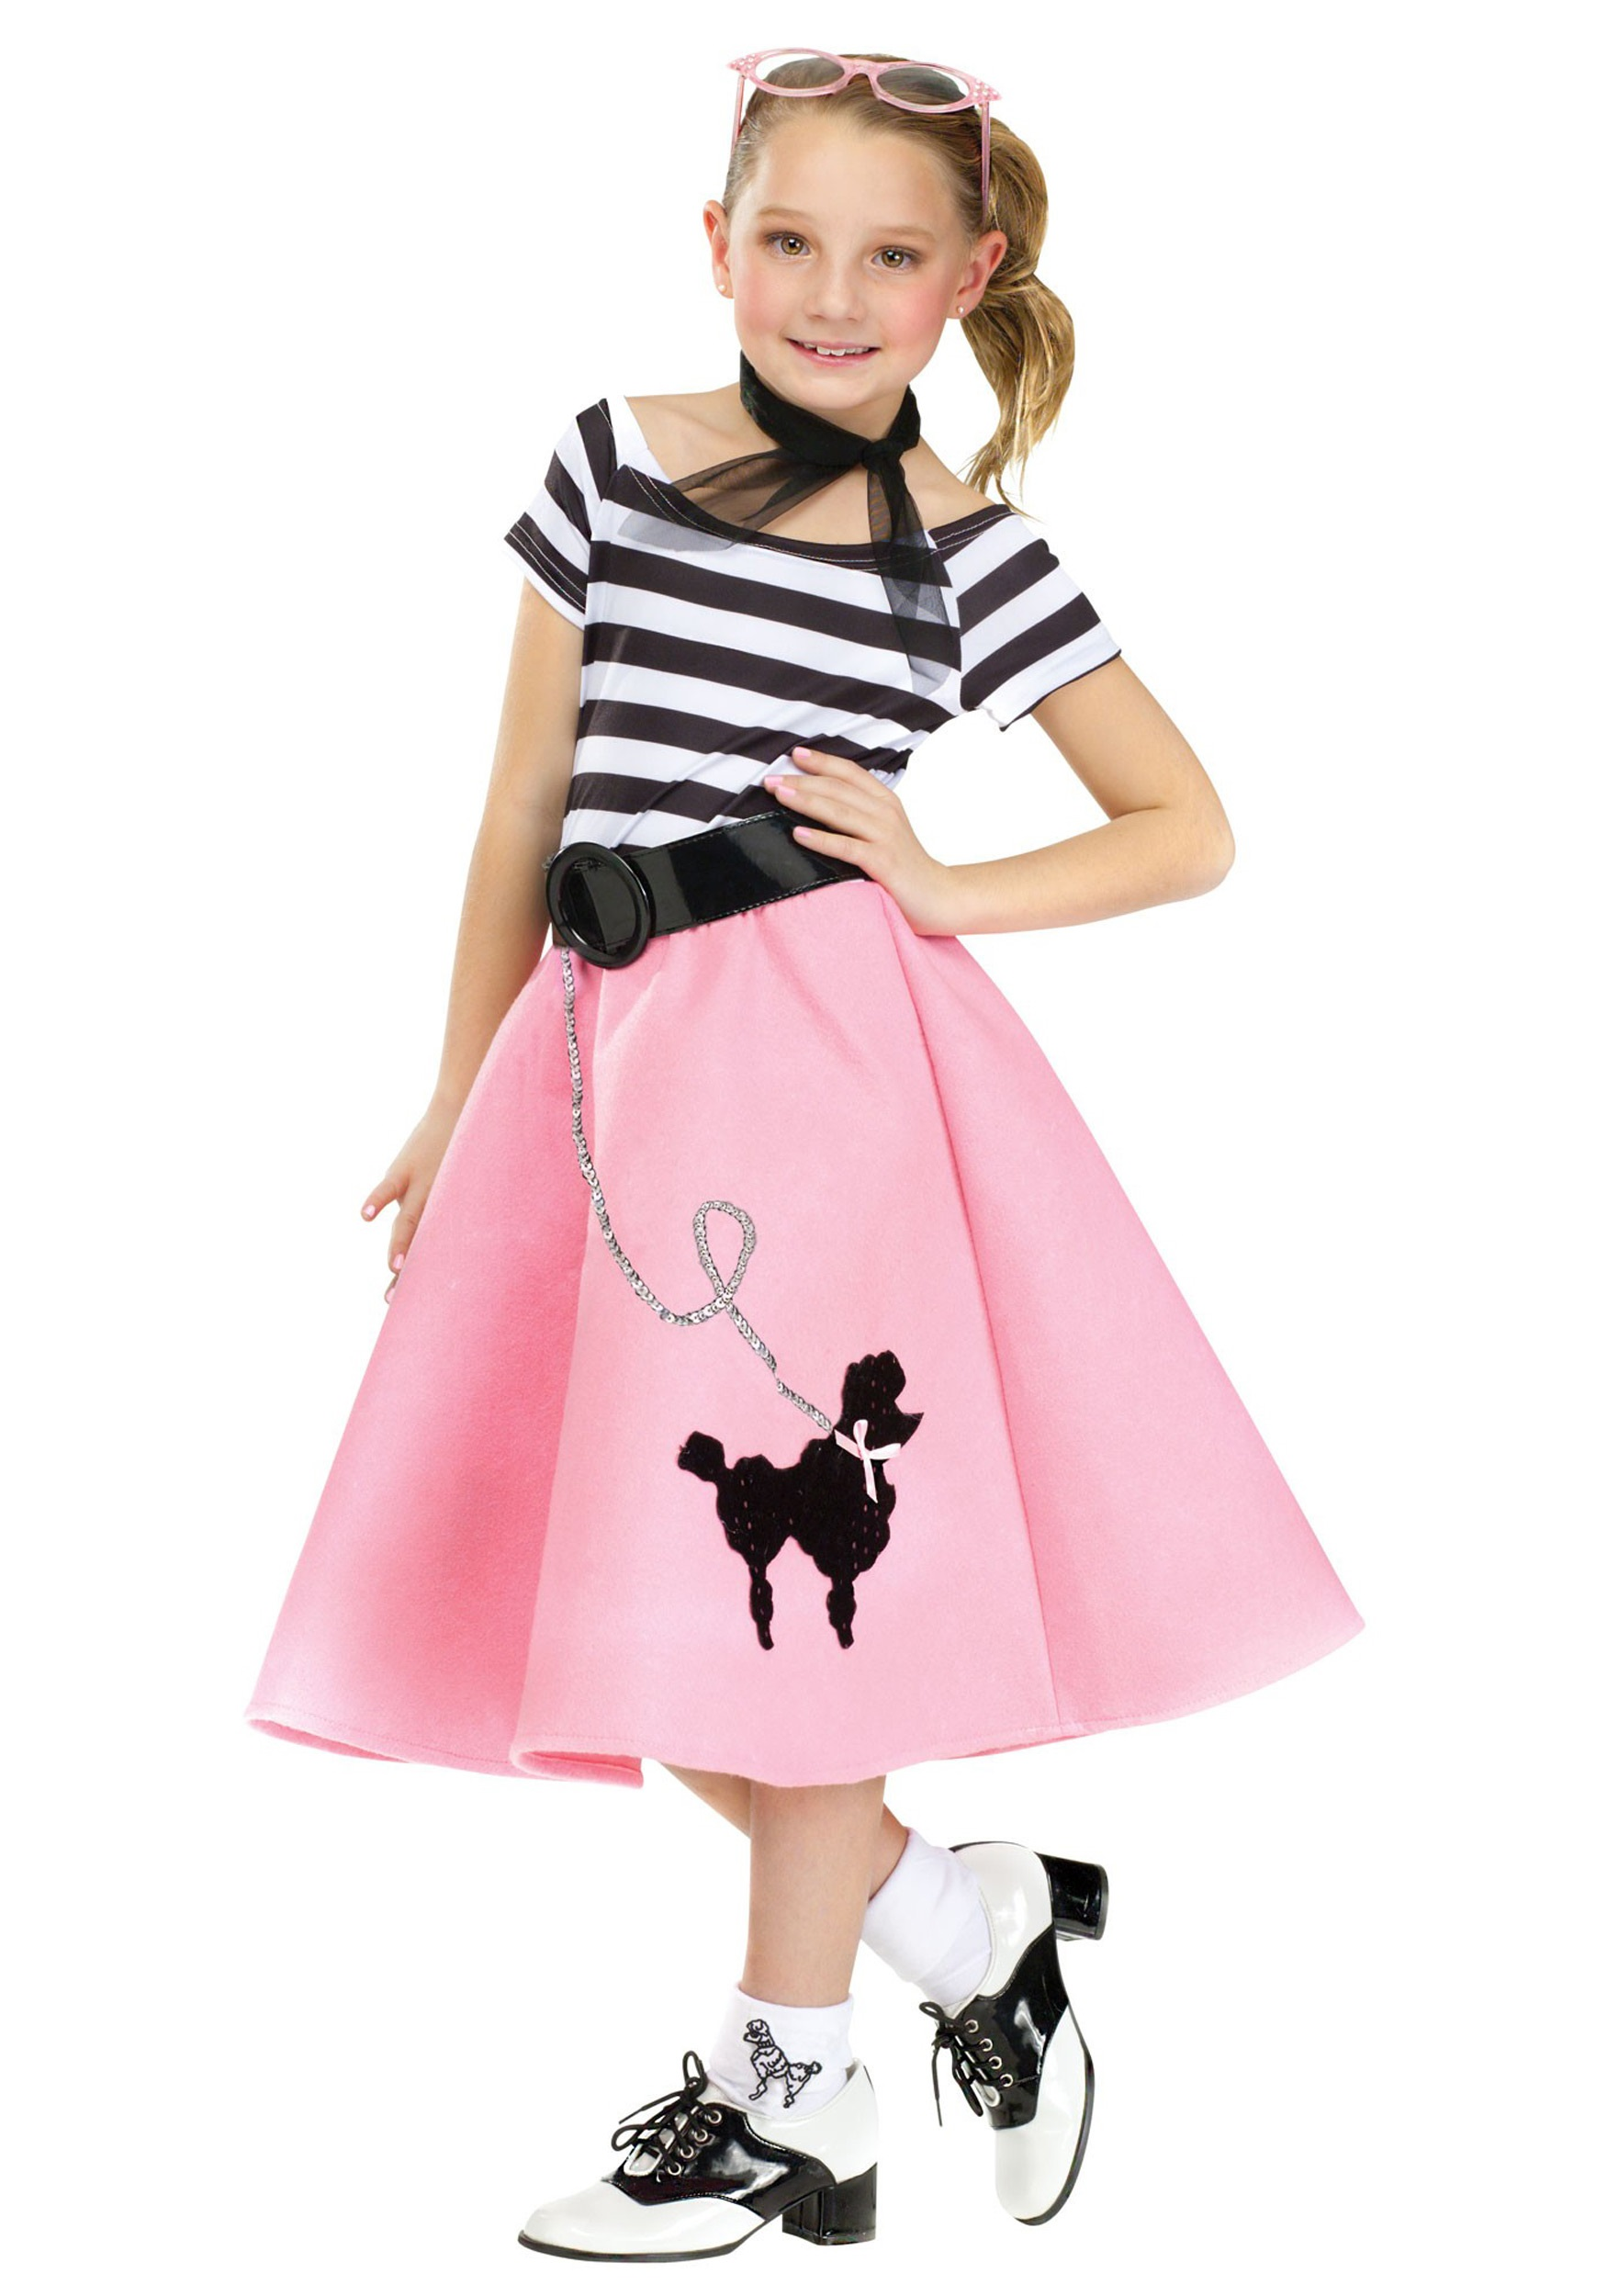 Girls Poodle Skirt Dress  sc 1 st  Halloween Costumes & Girlu0027s Poodle Skirt Dress